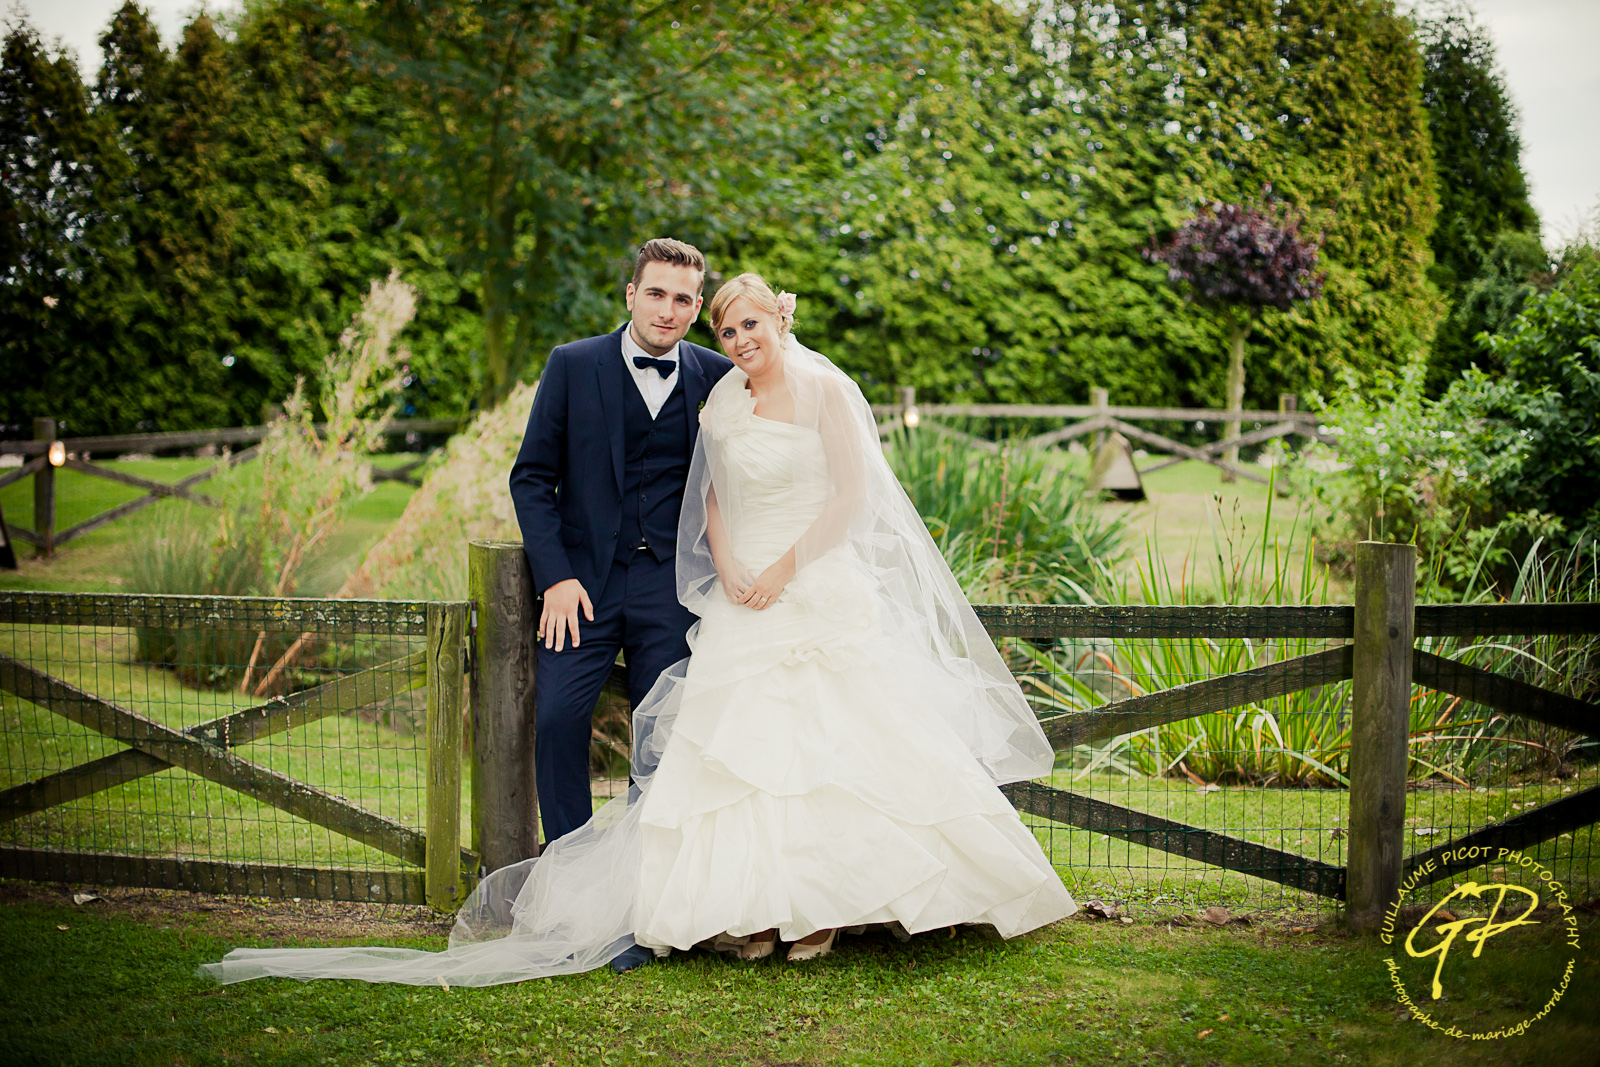 photographe mariage orchies-59